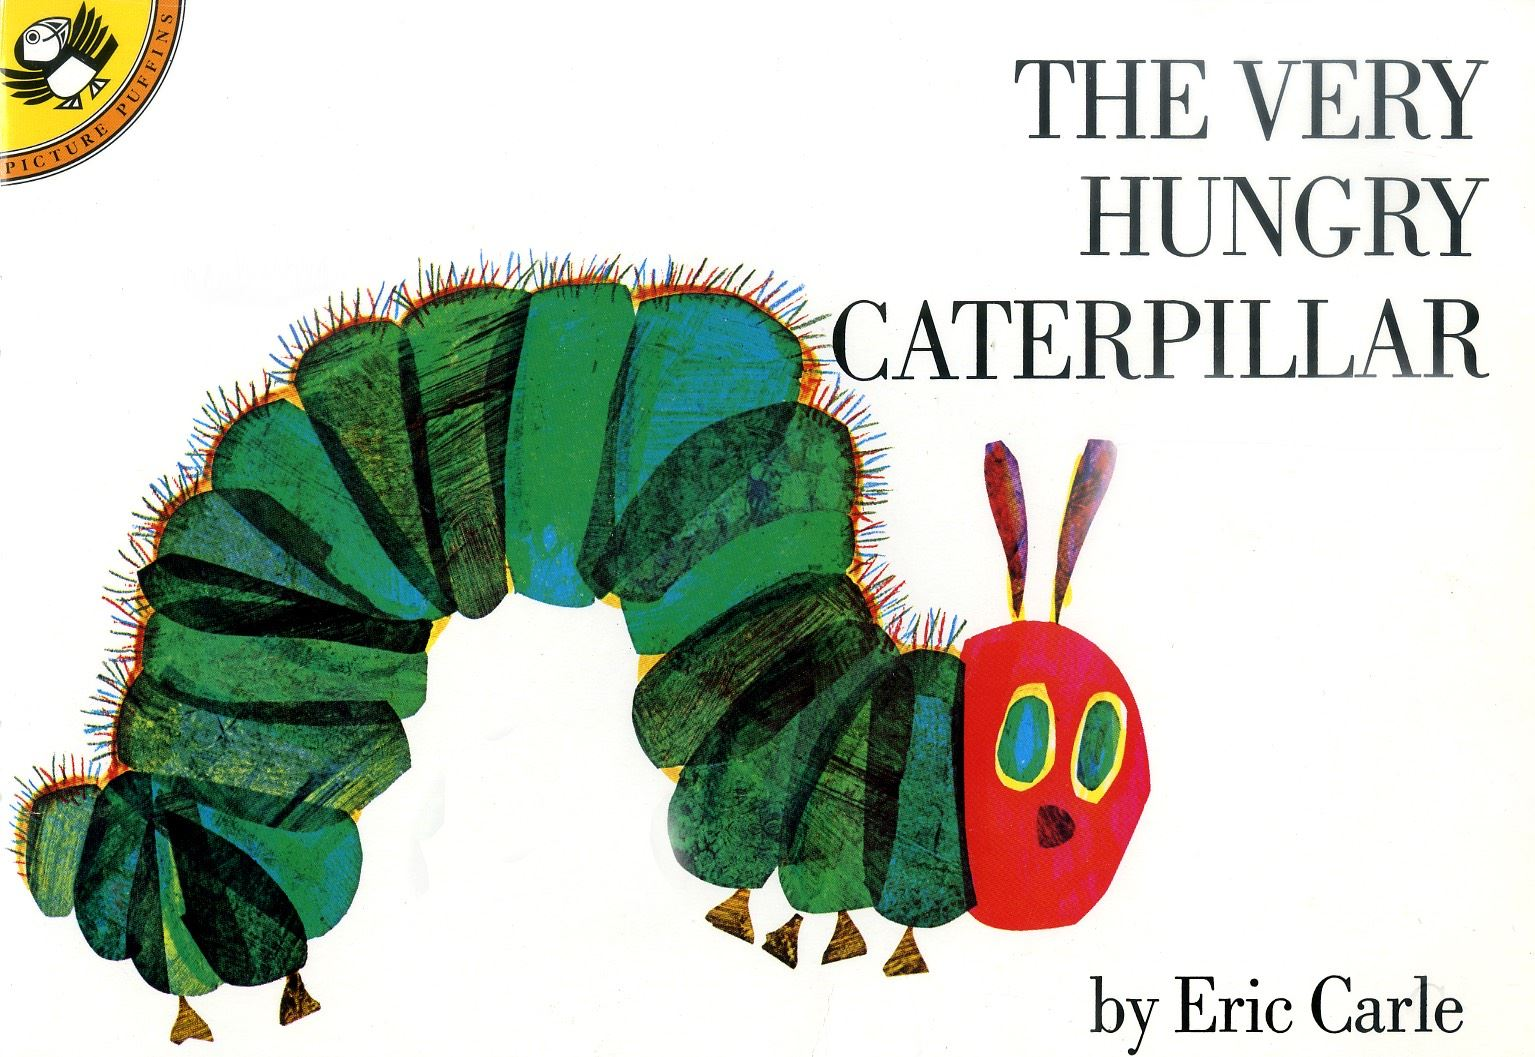 The-very-hungry-caterpillar by Eric Carle